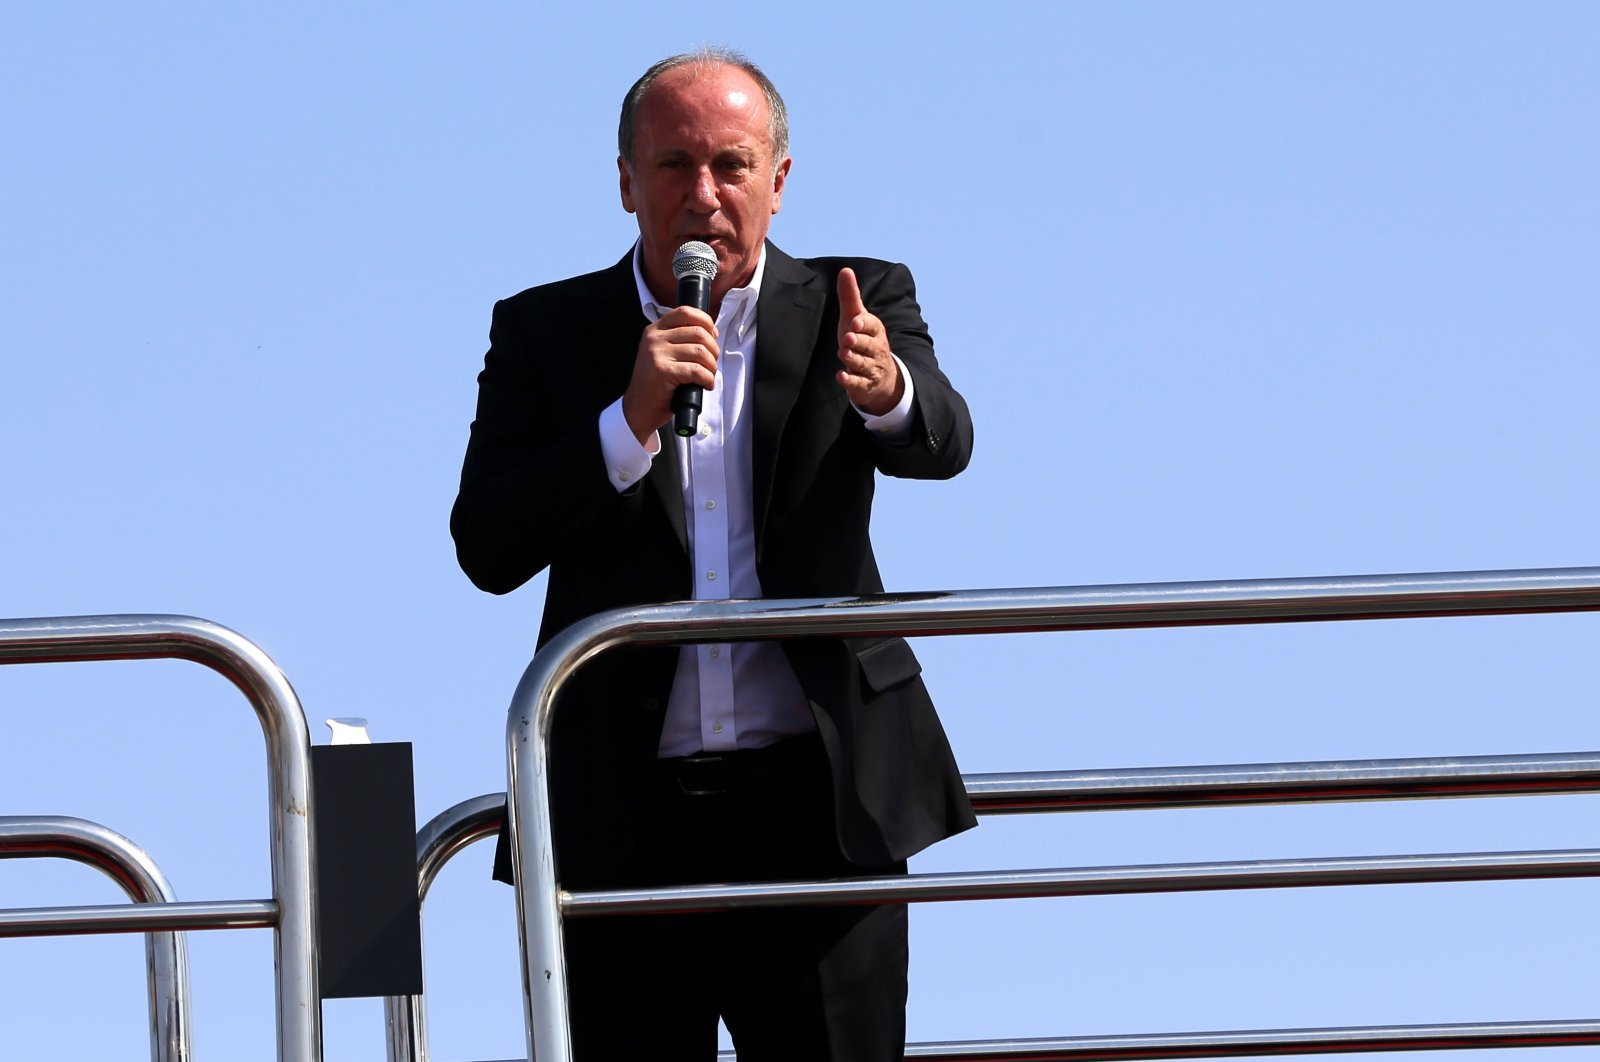 Muharrem Ince addresses people on the top of a bus in Sivas province, Turkey, Sept. 4, 2020. (AA Photo)